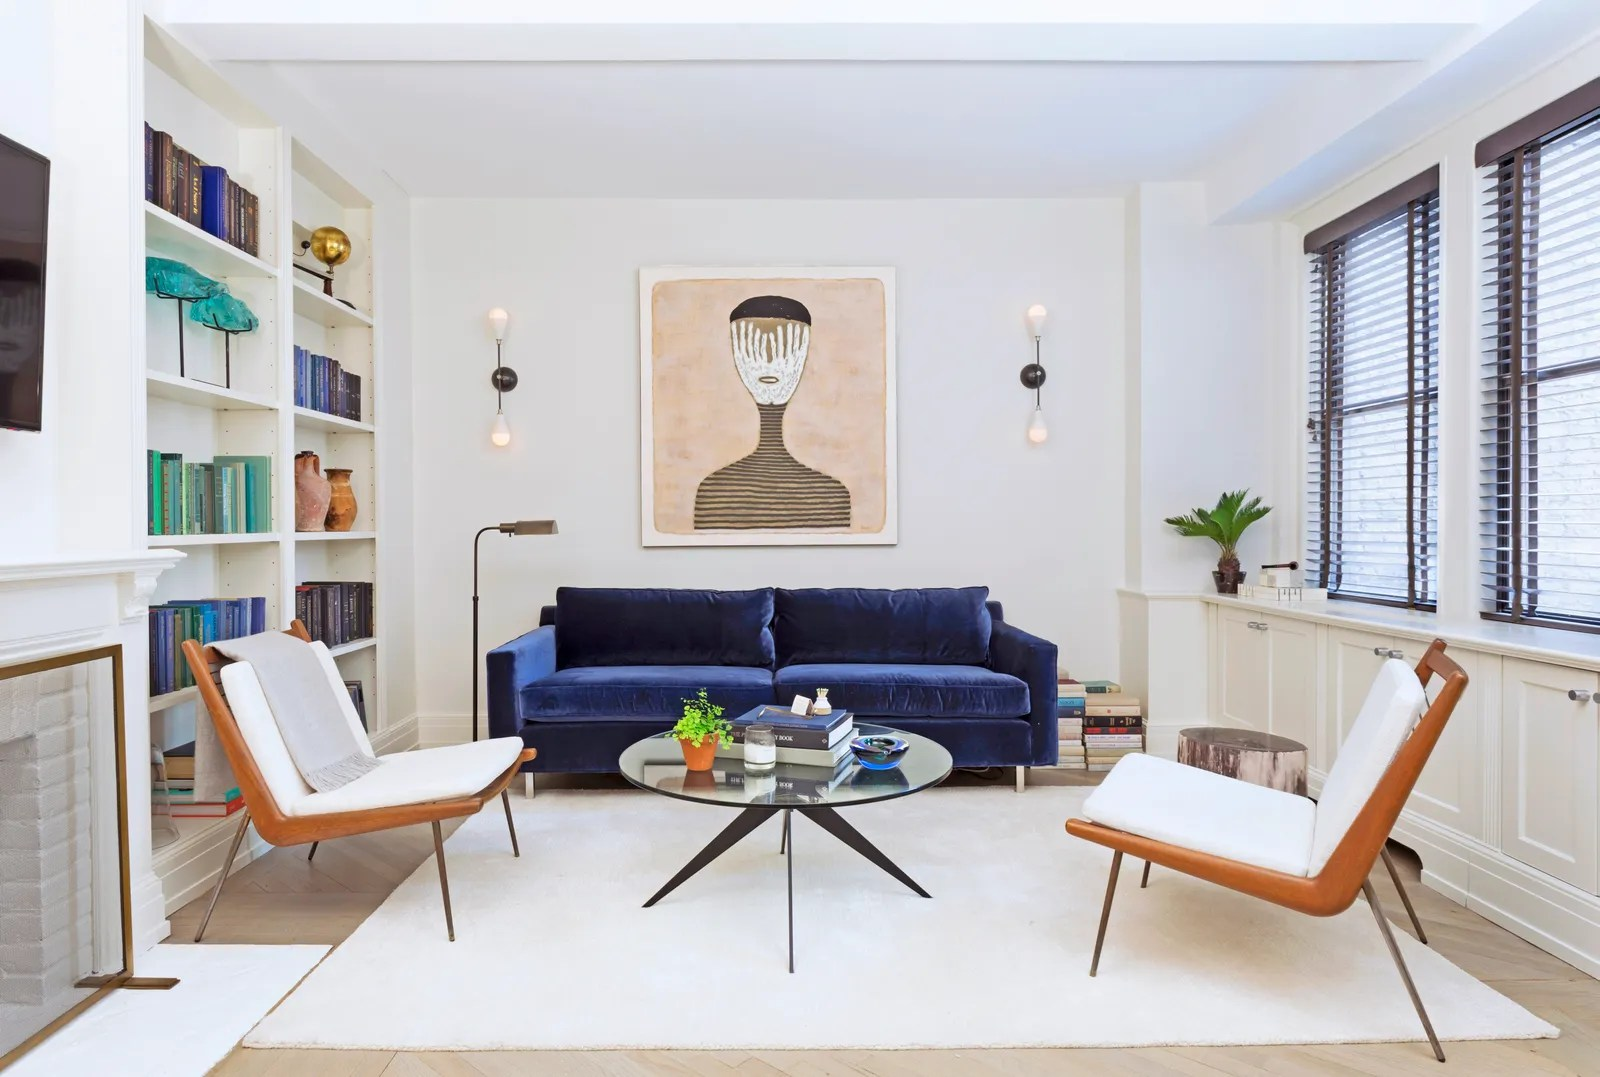 Living Room Spaces 10 Tips For Decorating Small Spaces Architectural Digest